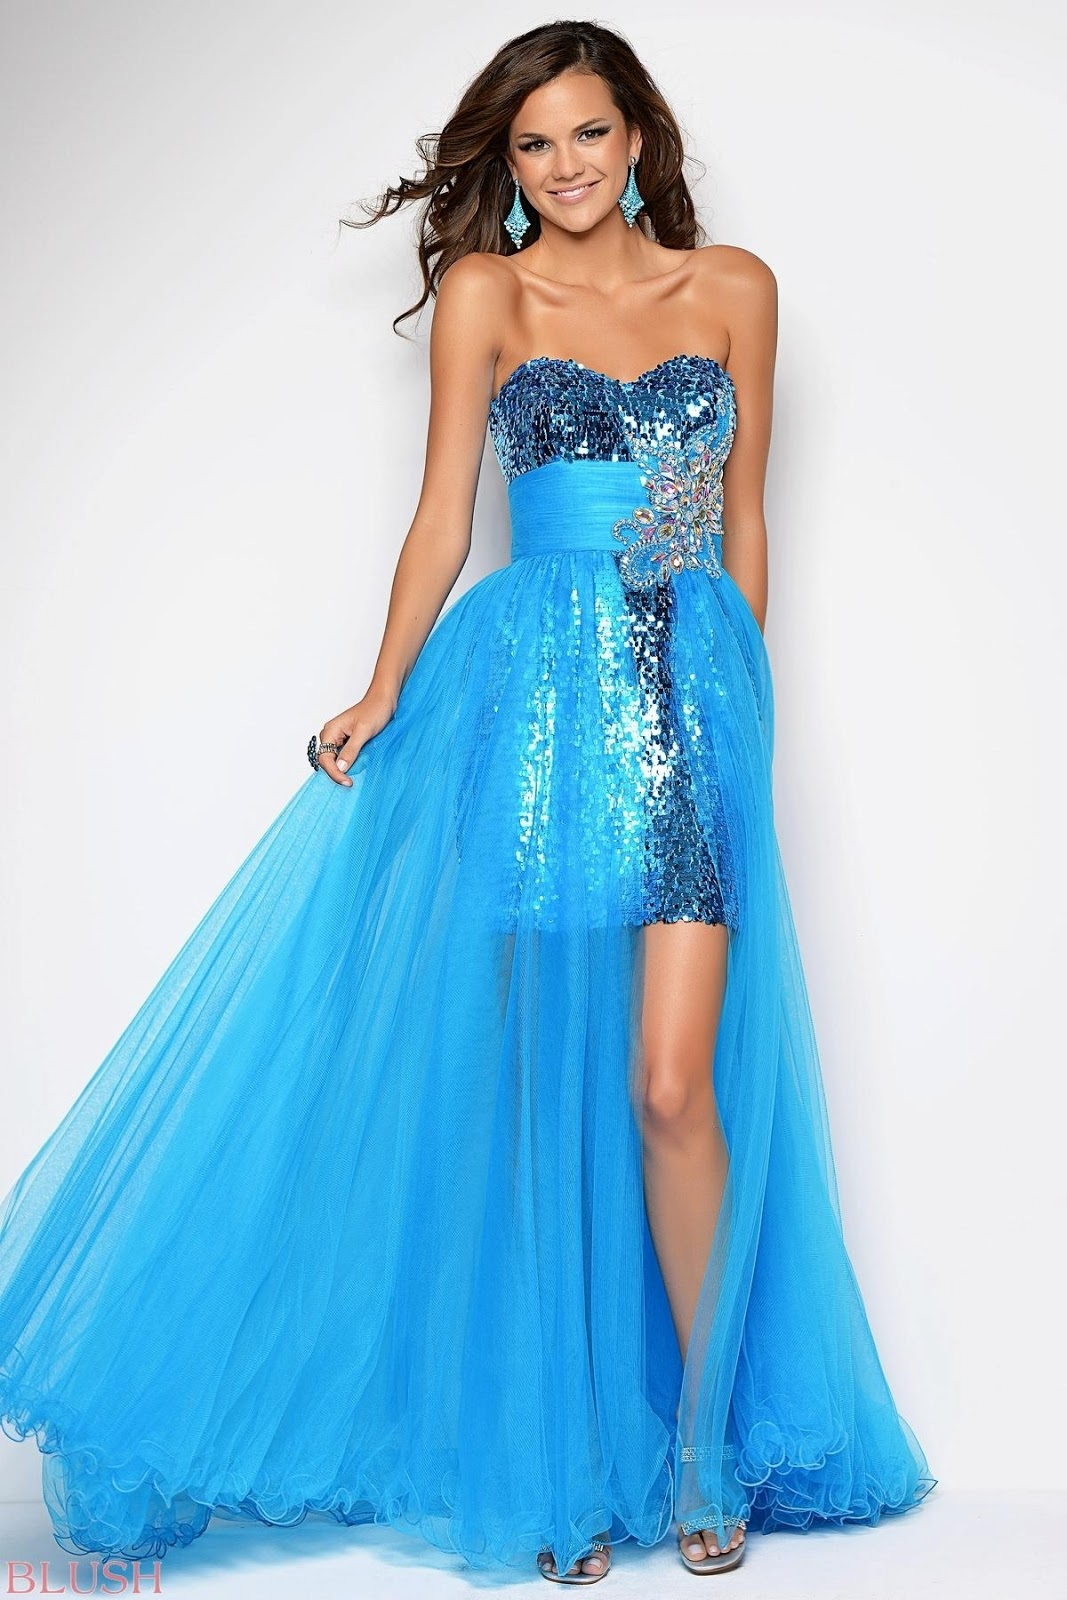 Some Models Dress Women: 2013 Prom Dresses Collection From Blush Prom